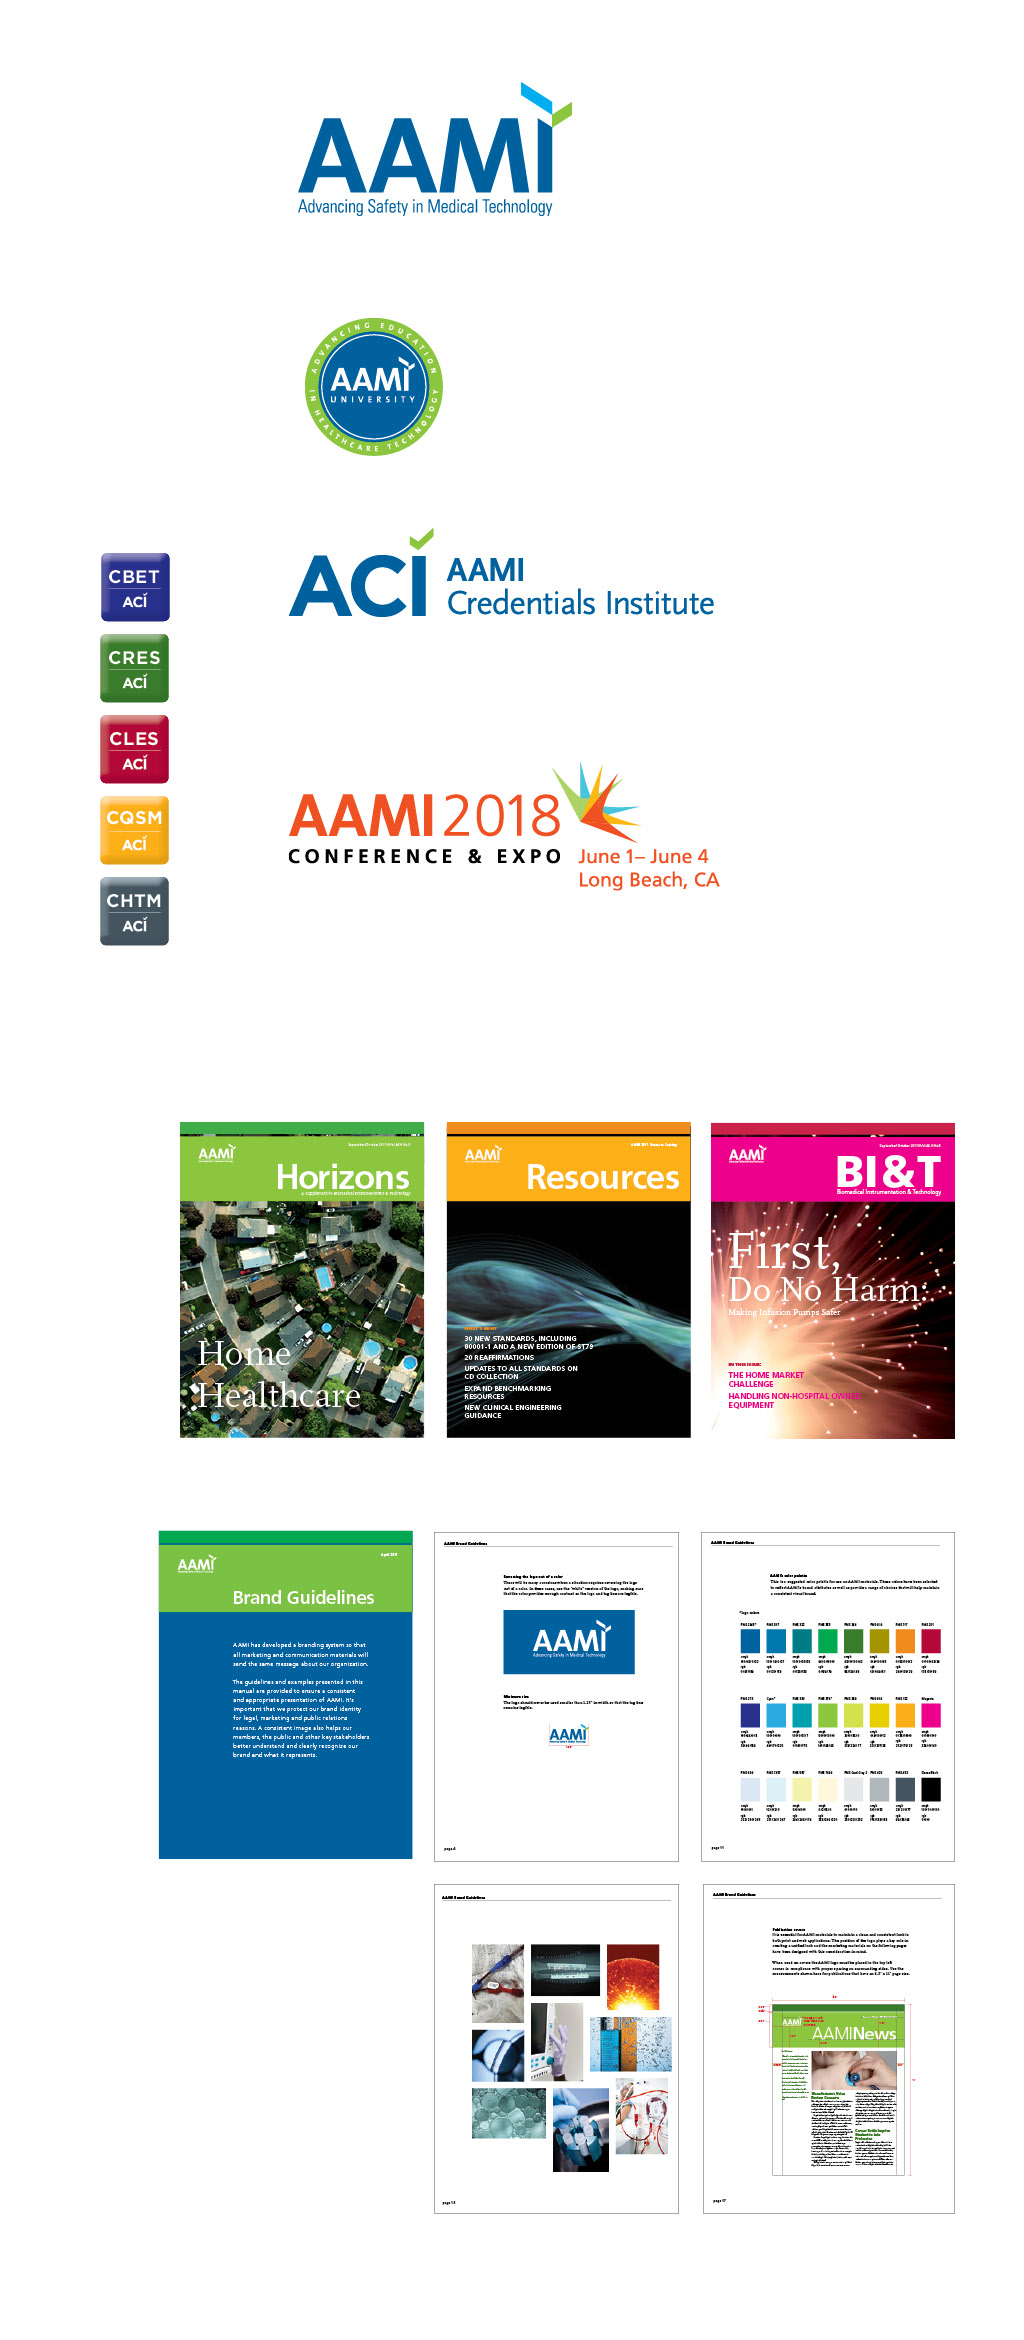 AAMI: Medical Technology Association Branding